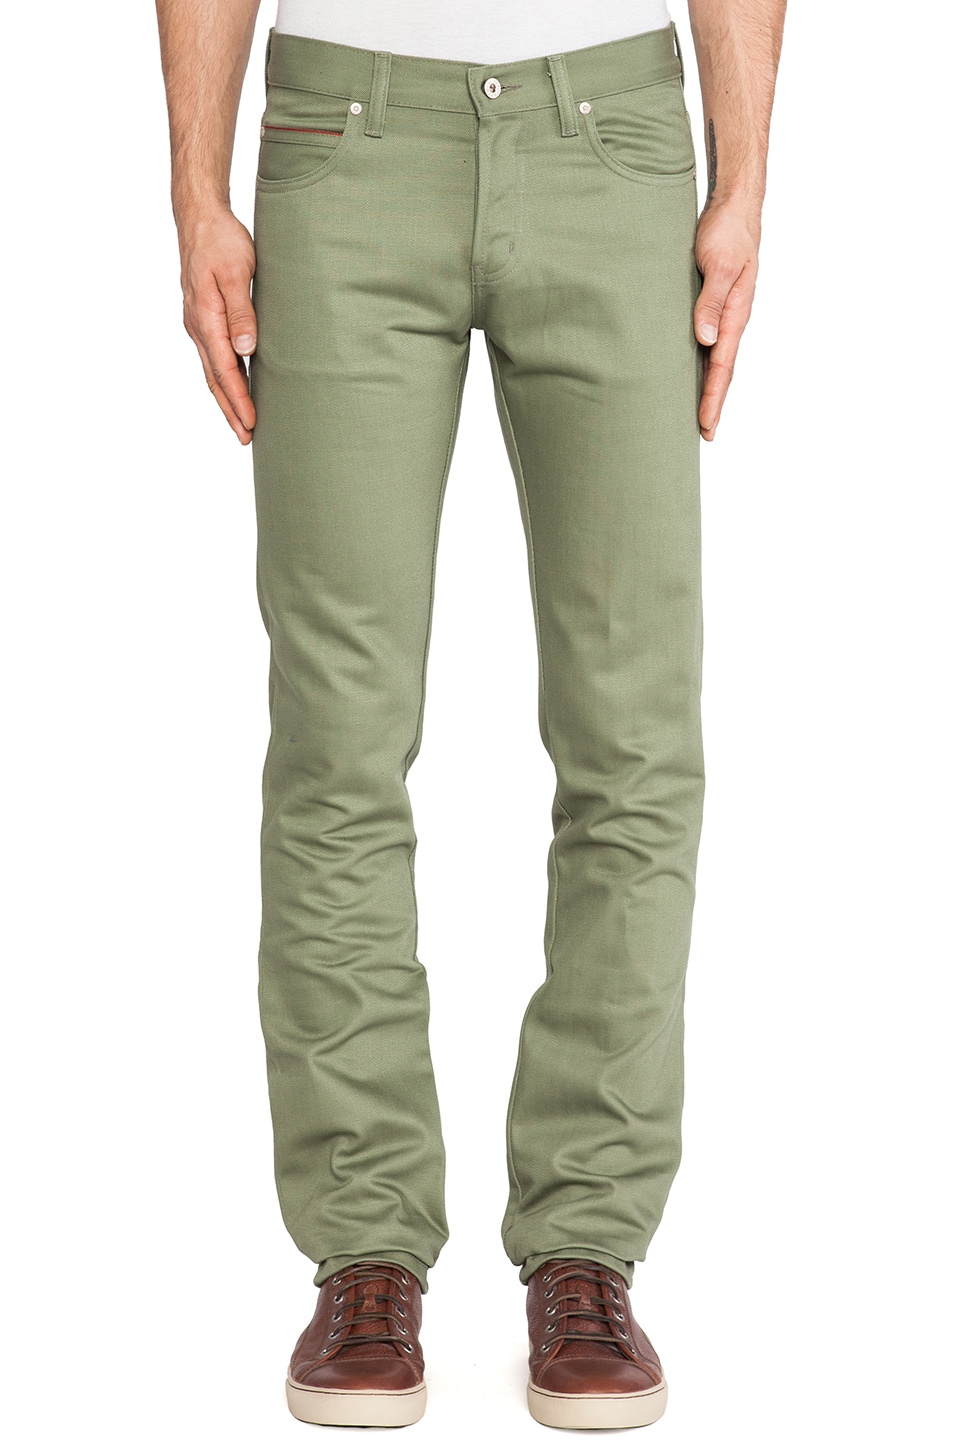 Naked & Famous Denim Skinny Guy Leaf Green Selvedge Chino 12 oz. in Leaf Green